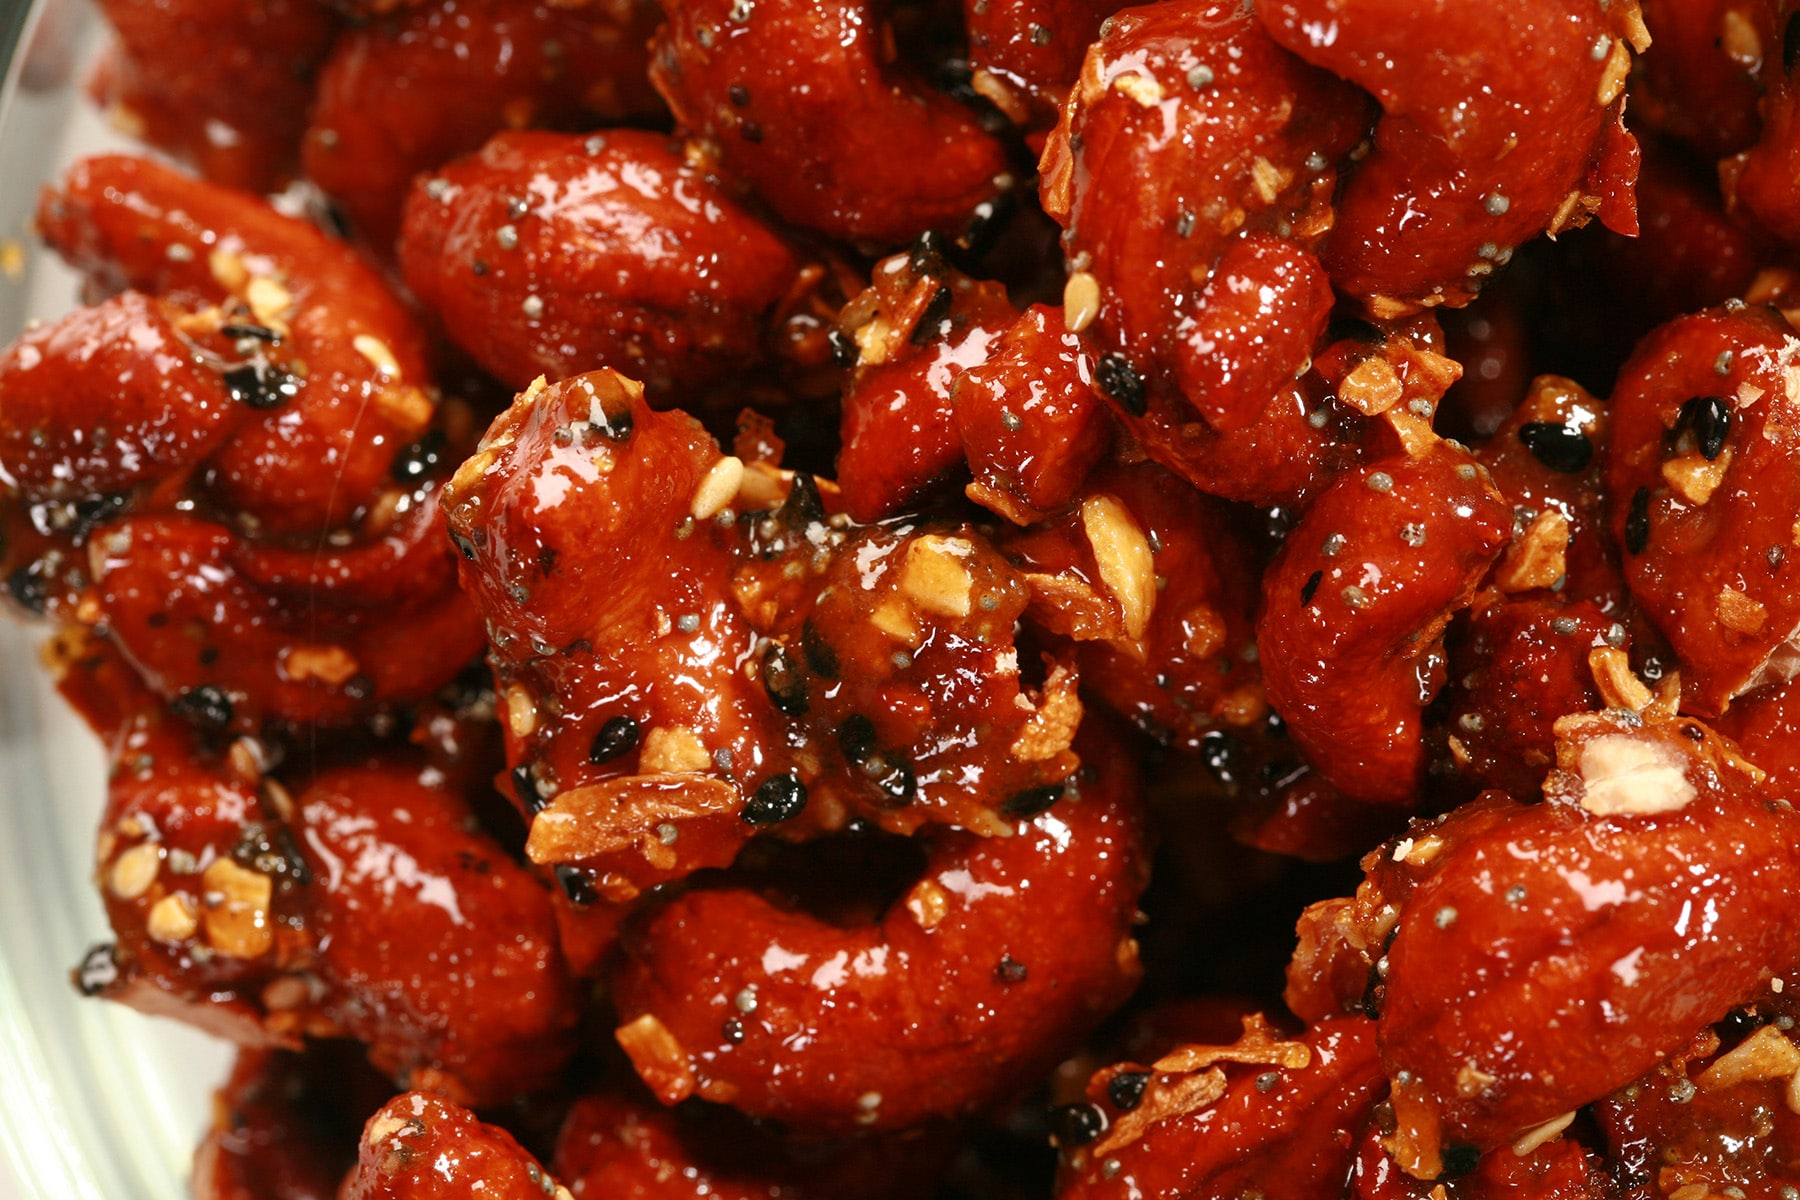 A close up view of Honey Glazed Cashews in a glass bowl. They are crusted with a deep reddish brown caramel, and coated with everything bagel seasoning.